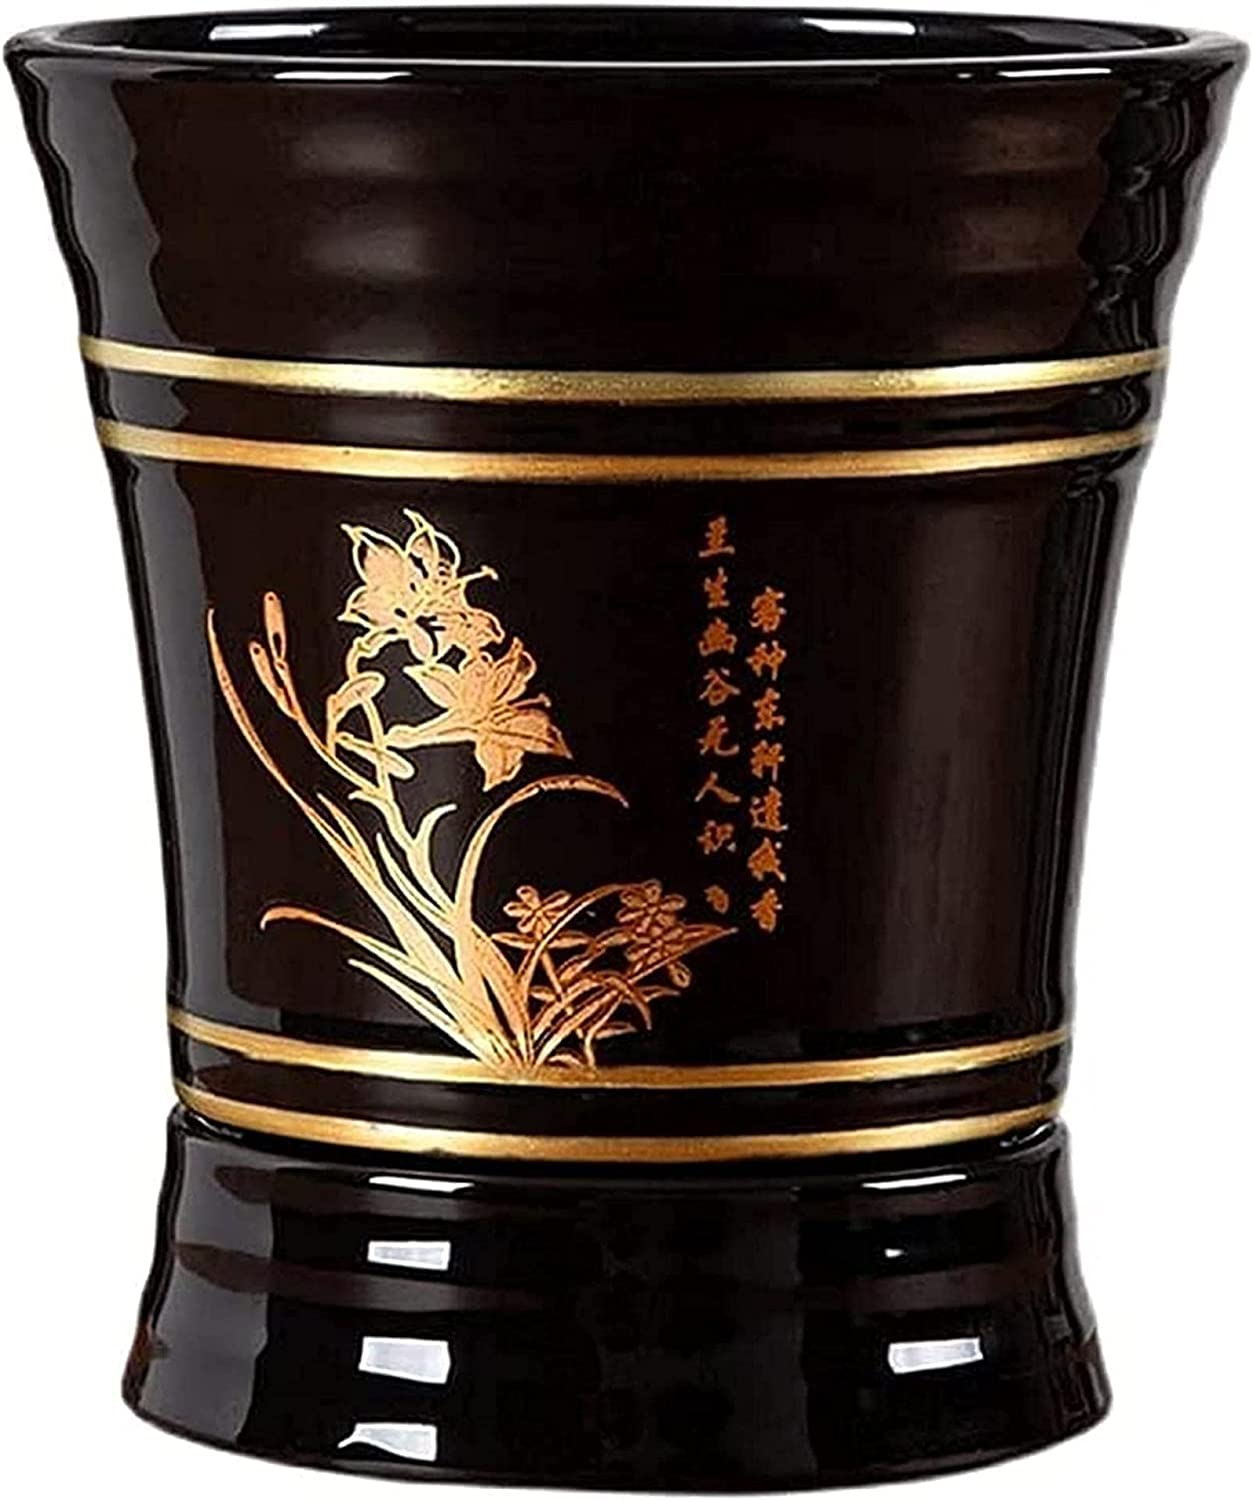 YINGJIA Ceramic Flower Fort Worth Mall Pot Plant Flow Container Year-end gift Small